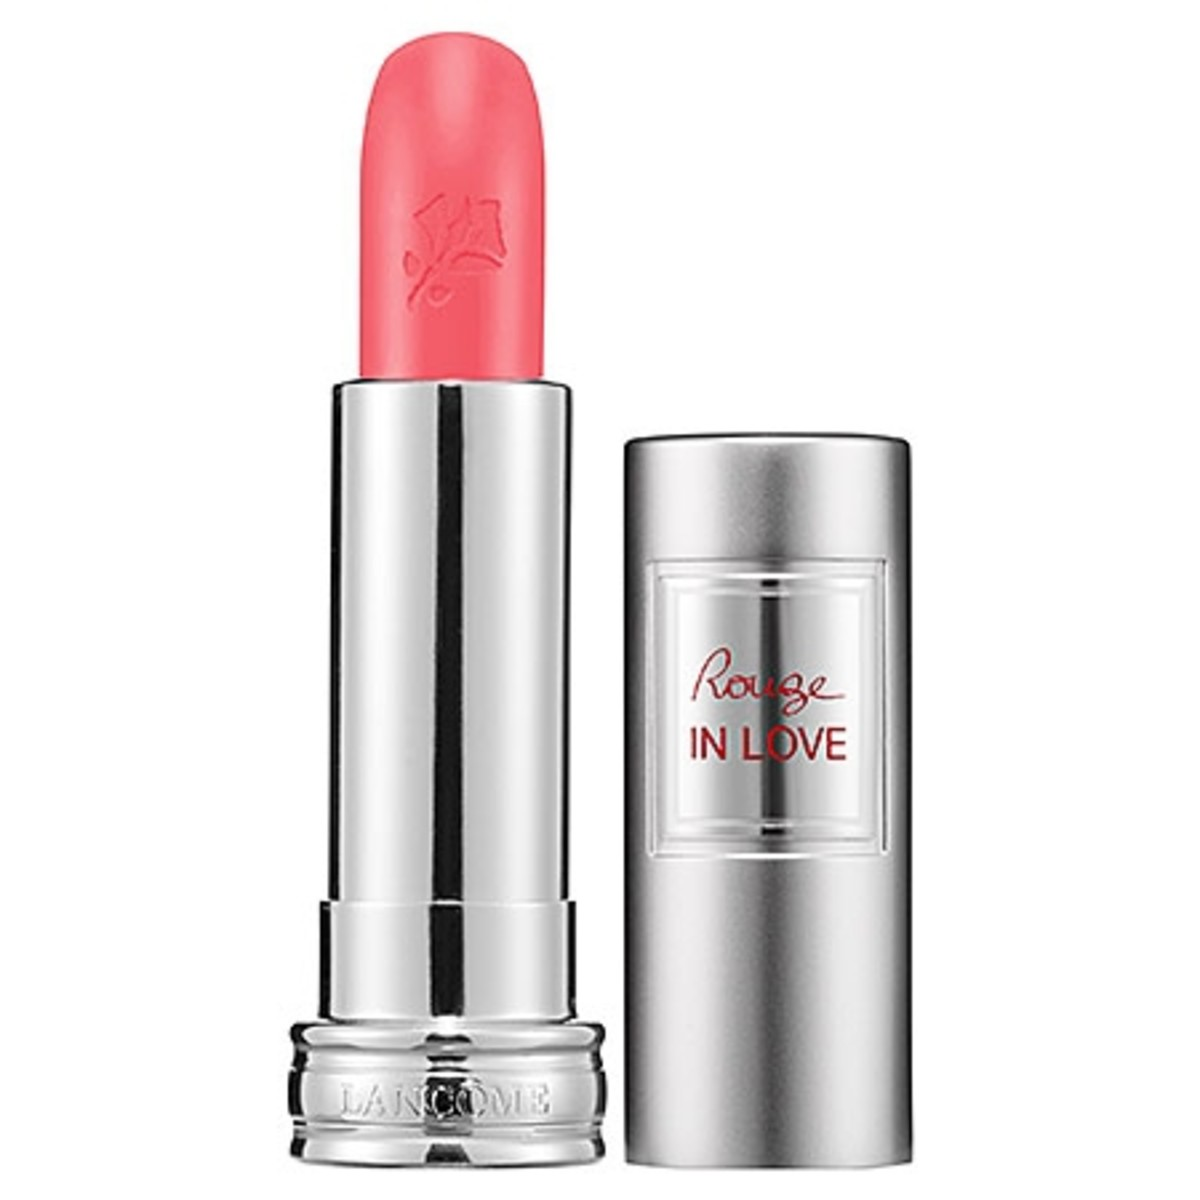 Lancome Rouge in Love Lipcolor in Fall in Rose